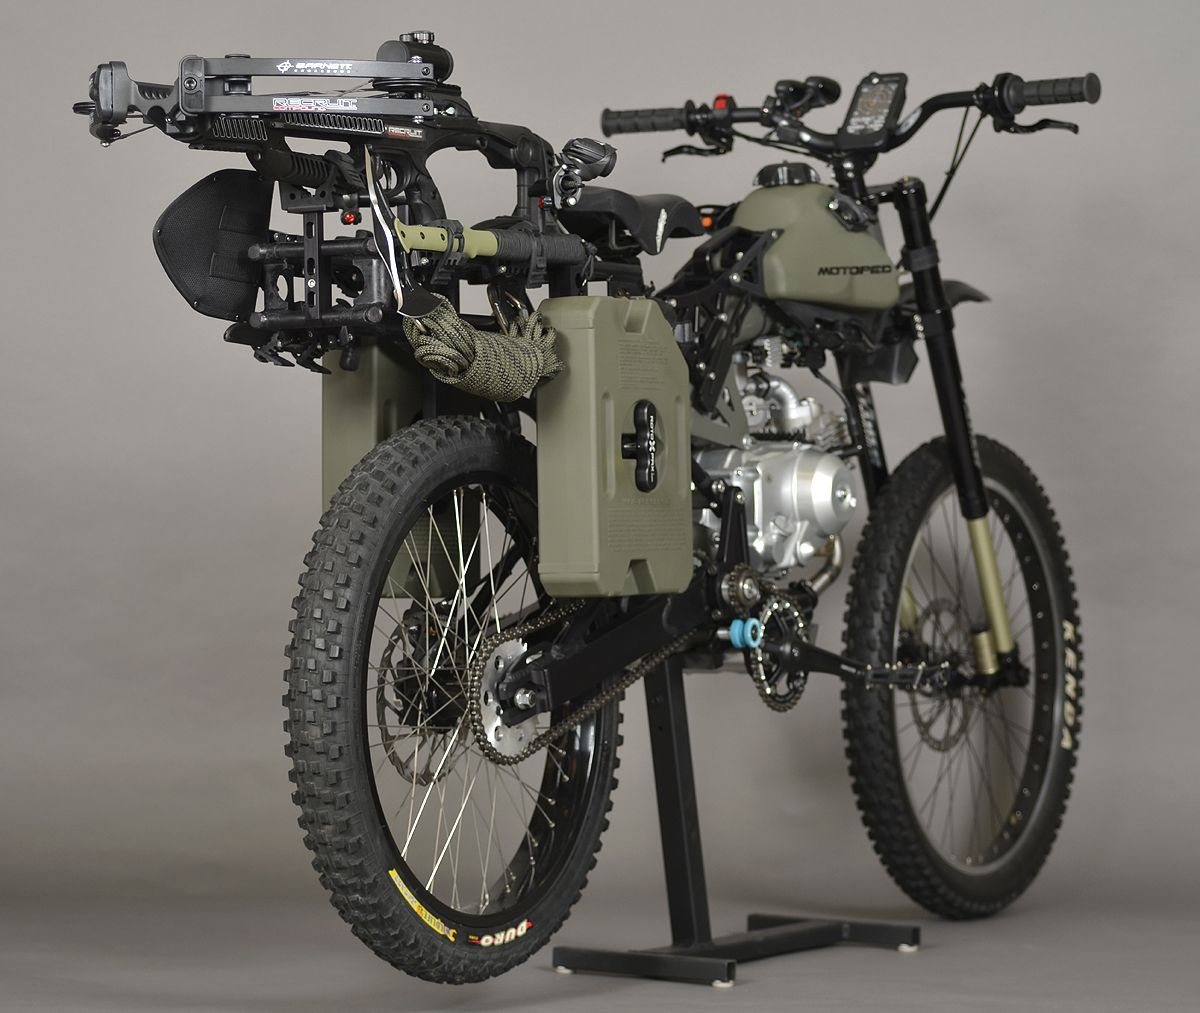 Motoped Launches Off Road Survival Moped In 2020 Bike Apocalypse Survival Survival